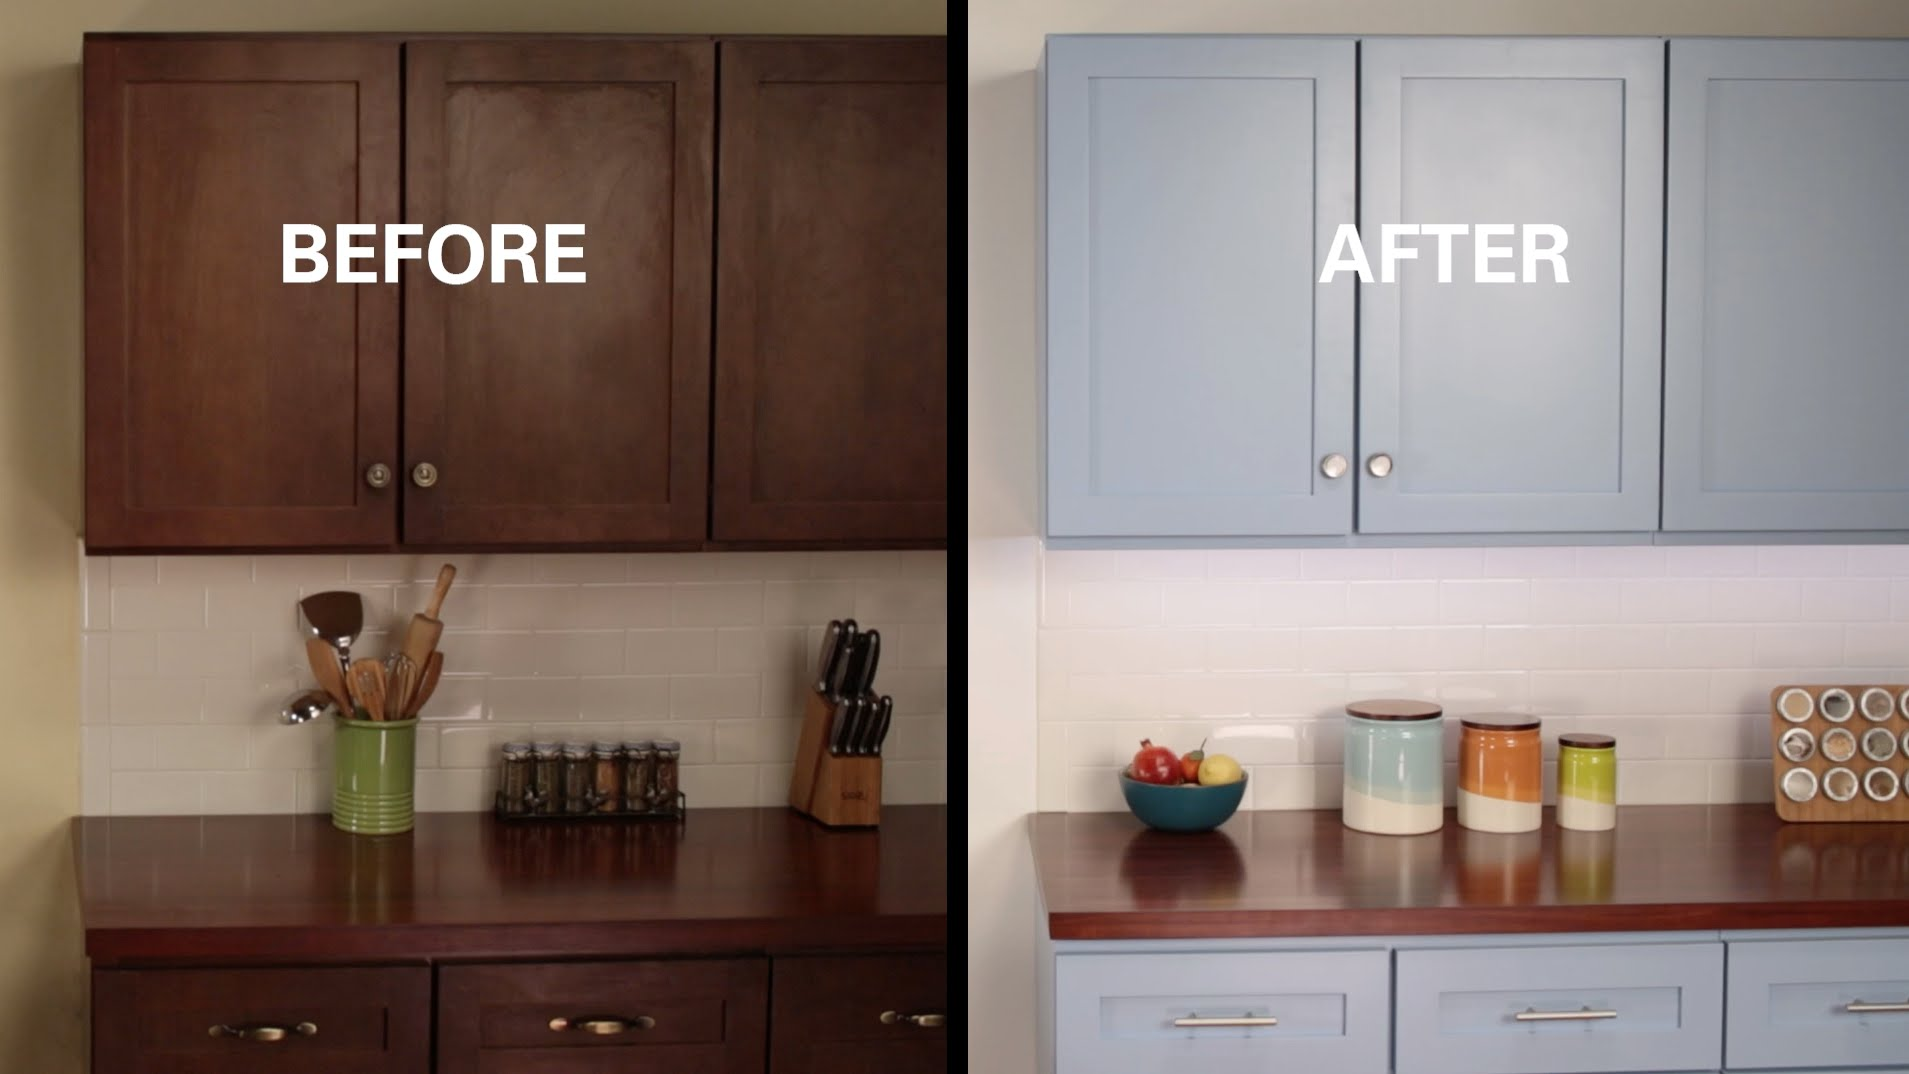 4 cheap kitchen upgrades for a new look without remodeling